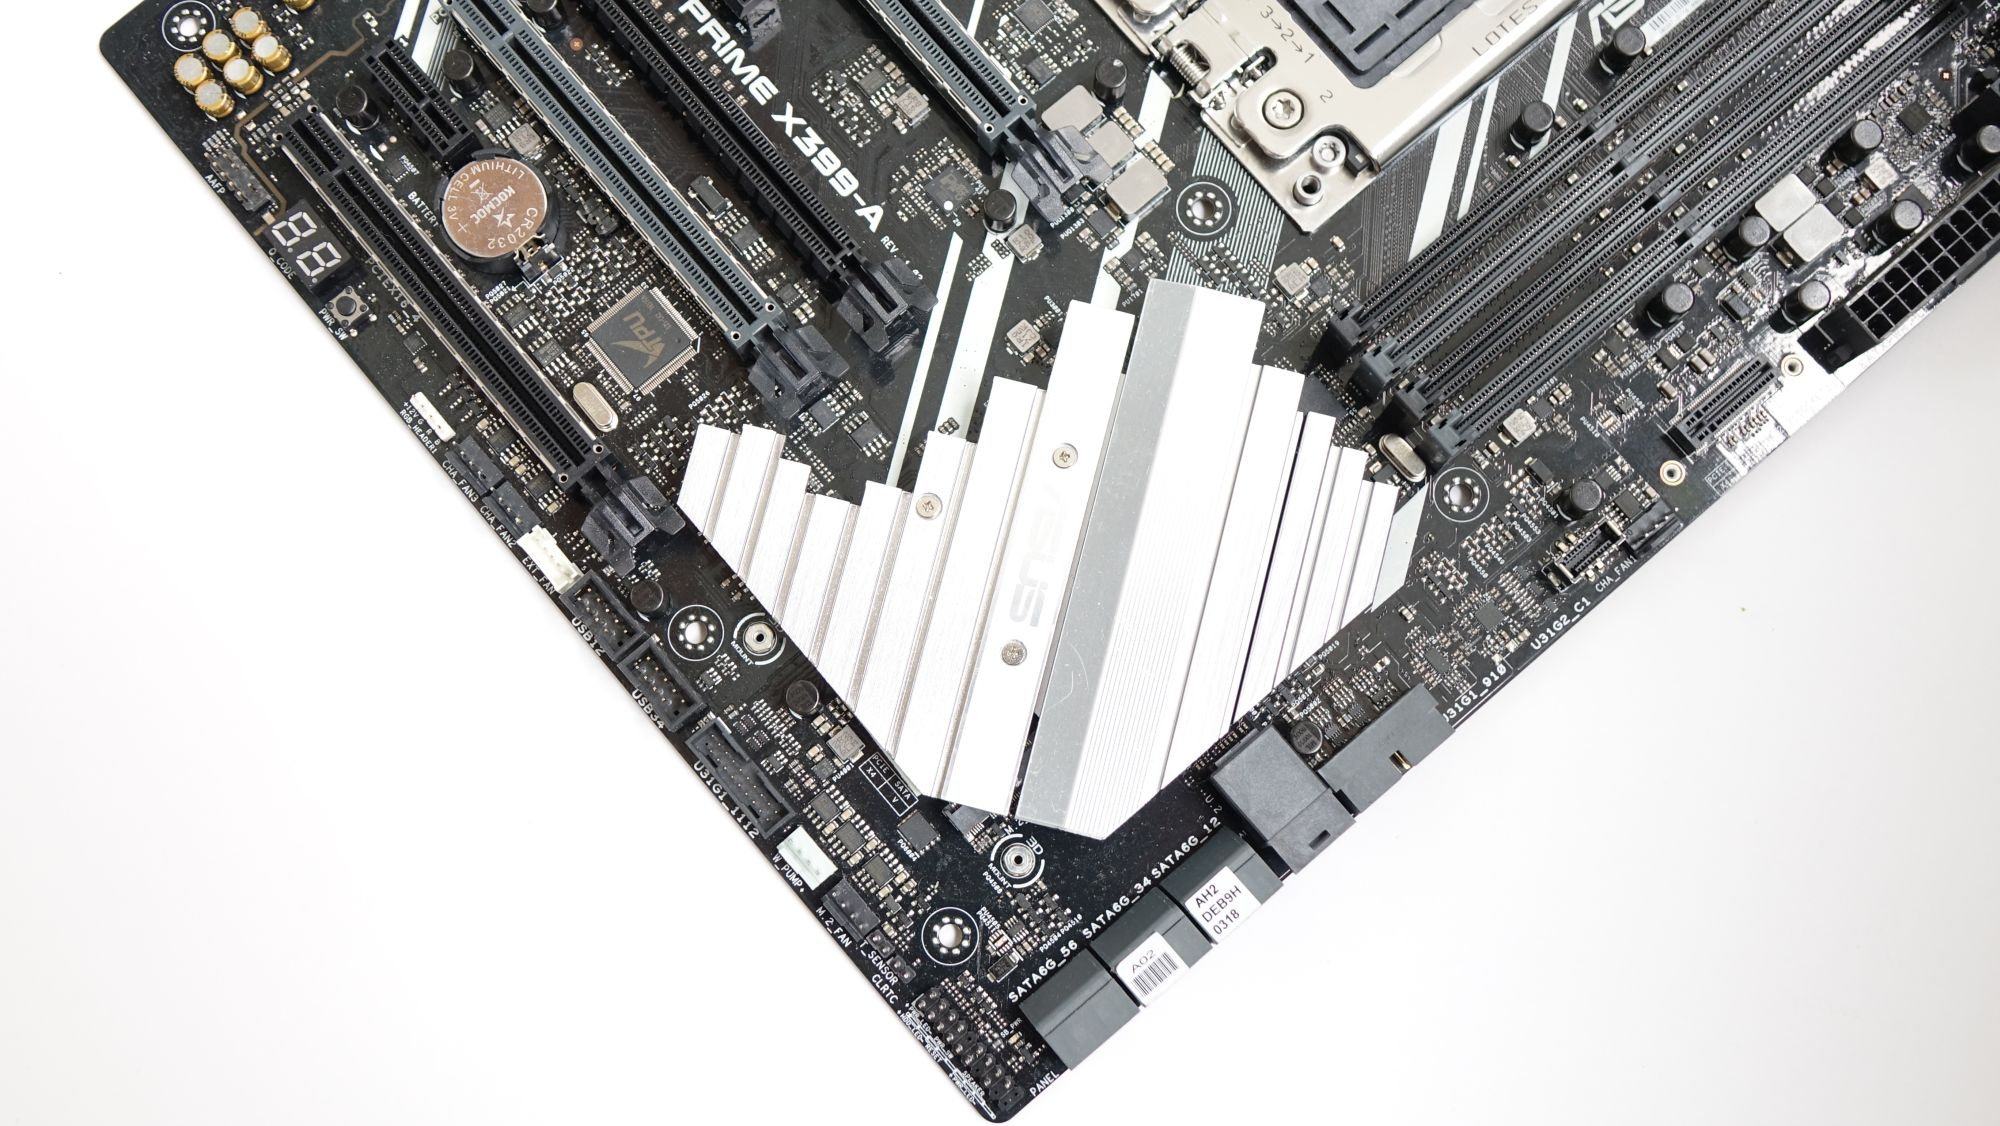 ASUS Prime X399-A chipset